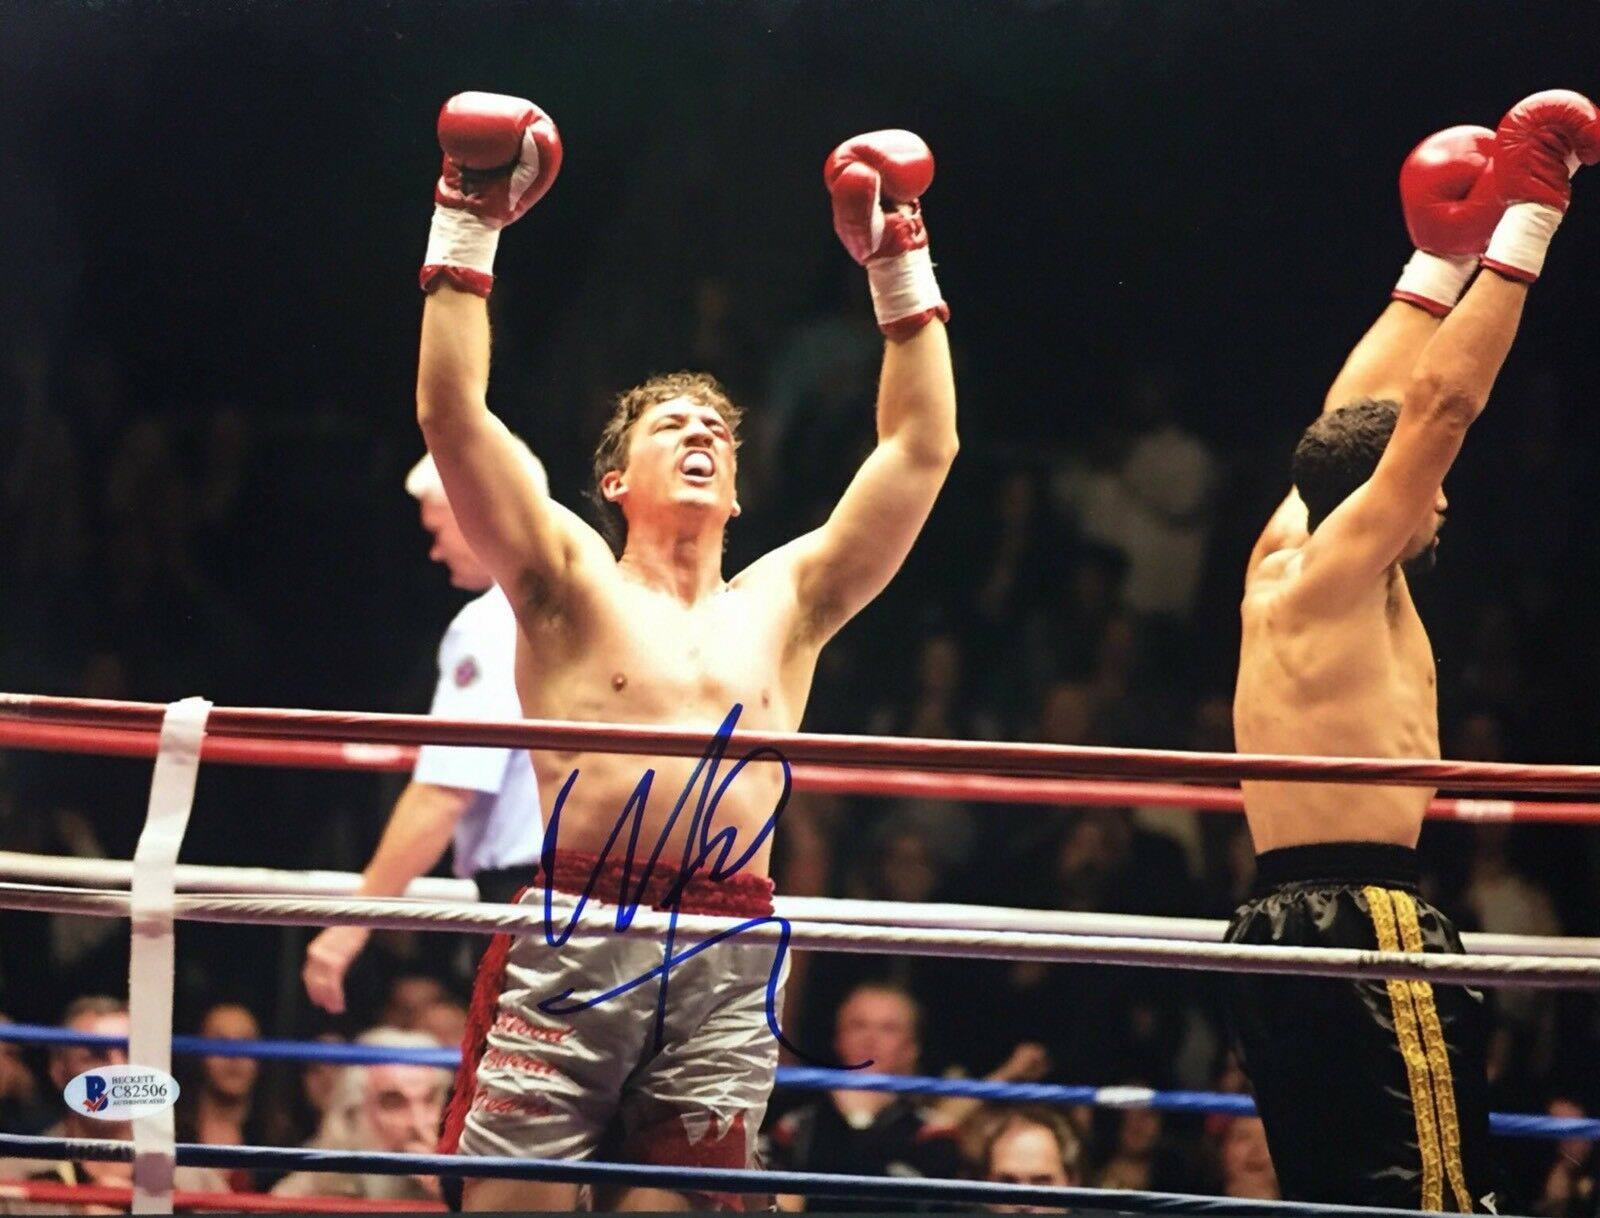 Miles Teller Signed Signed 11x14 Boxing Photo BAS Beckett C82506